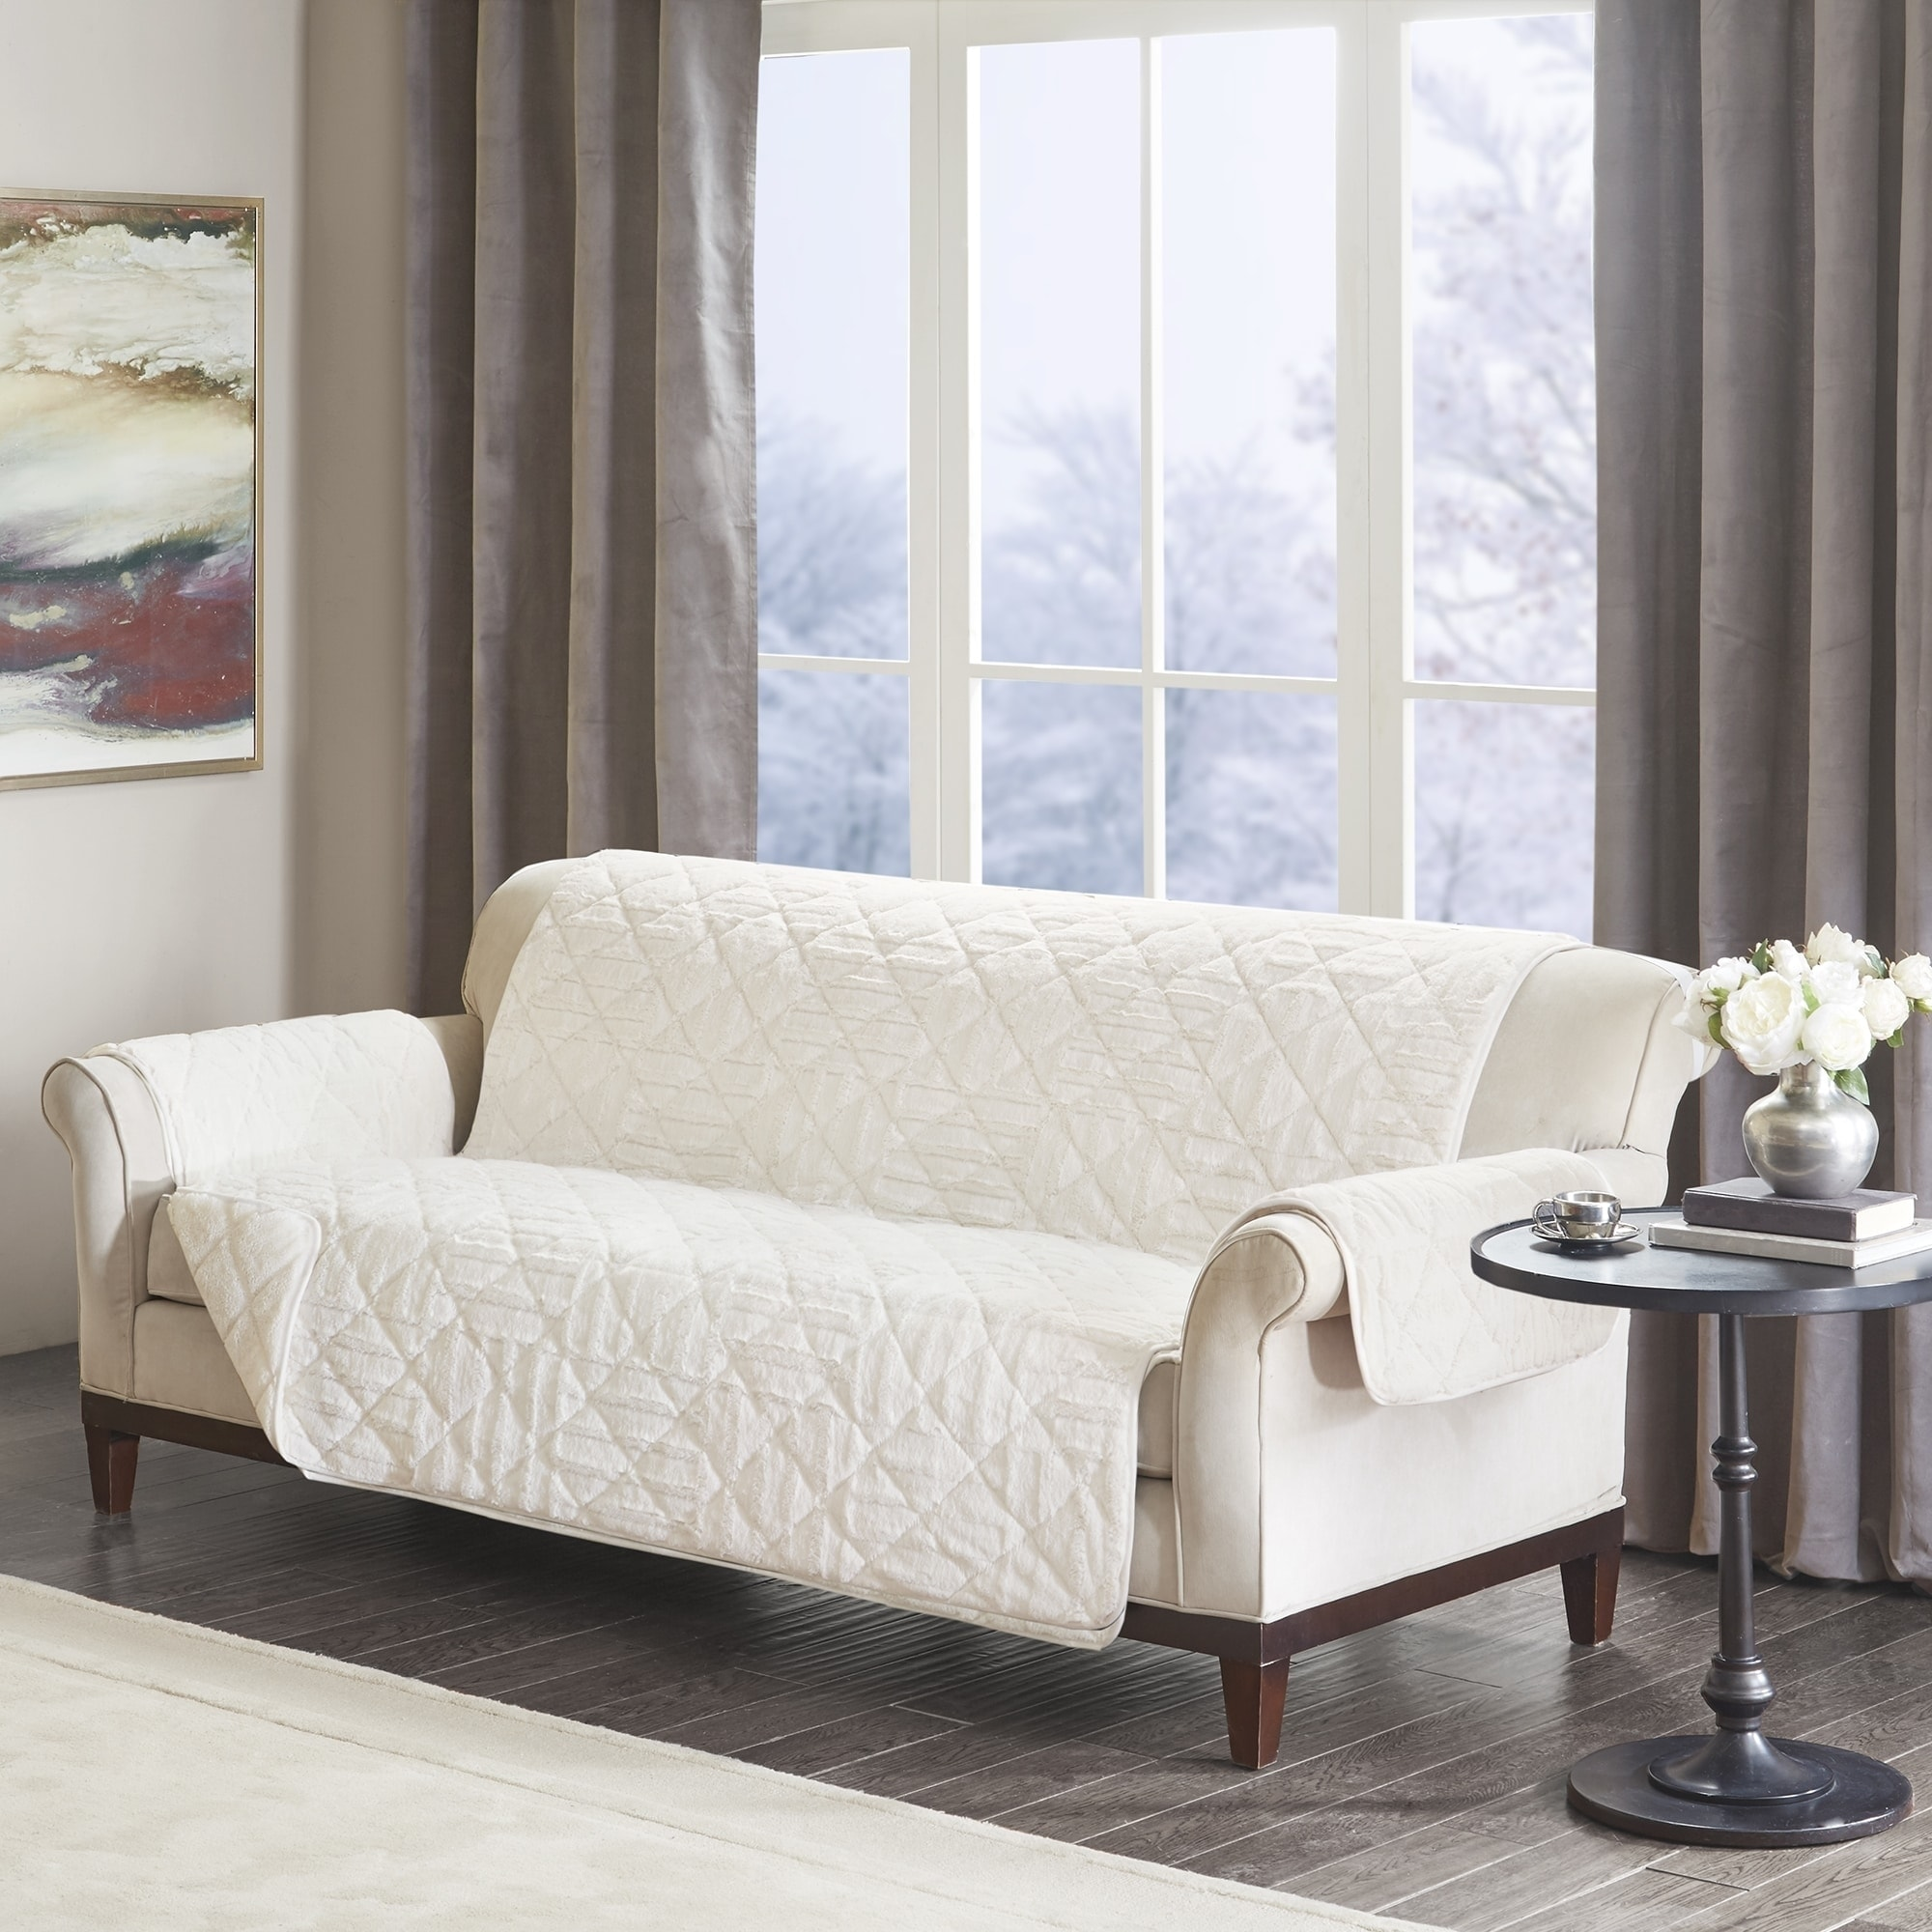 Sofa X Long Madison Park Polar Checkboard Long Faux Fur Sofa Furniture Protector 2 Color Option 110